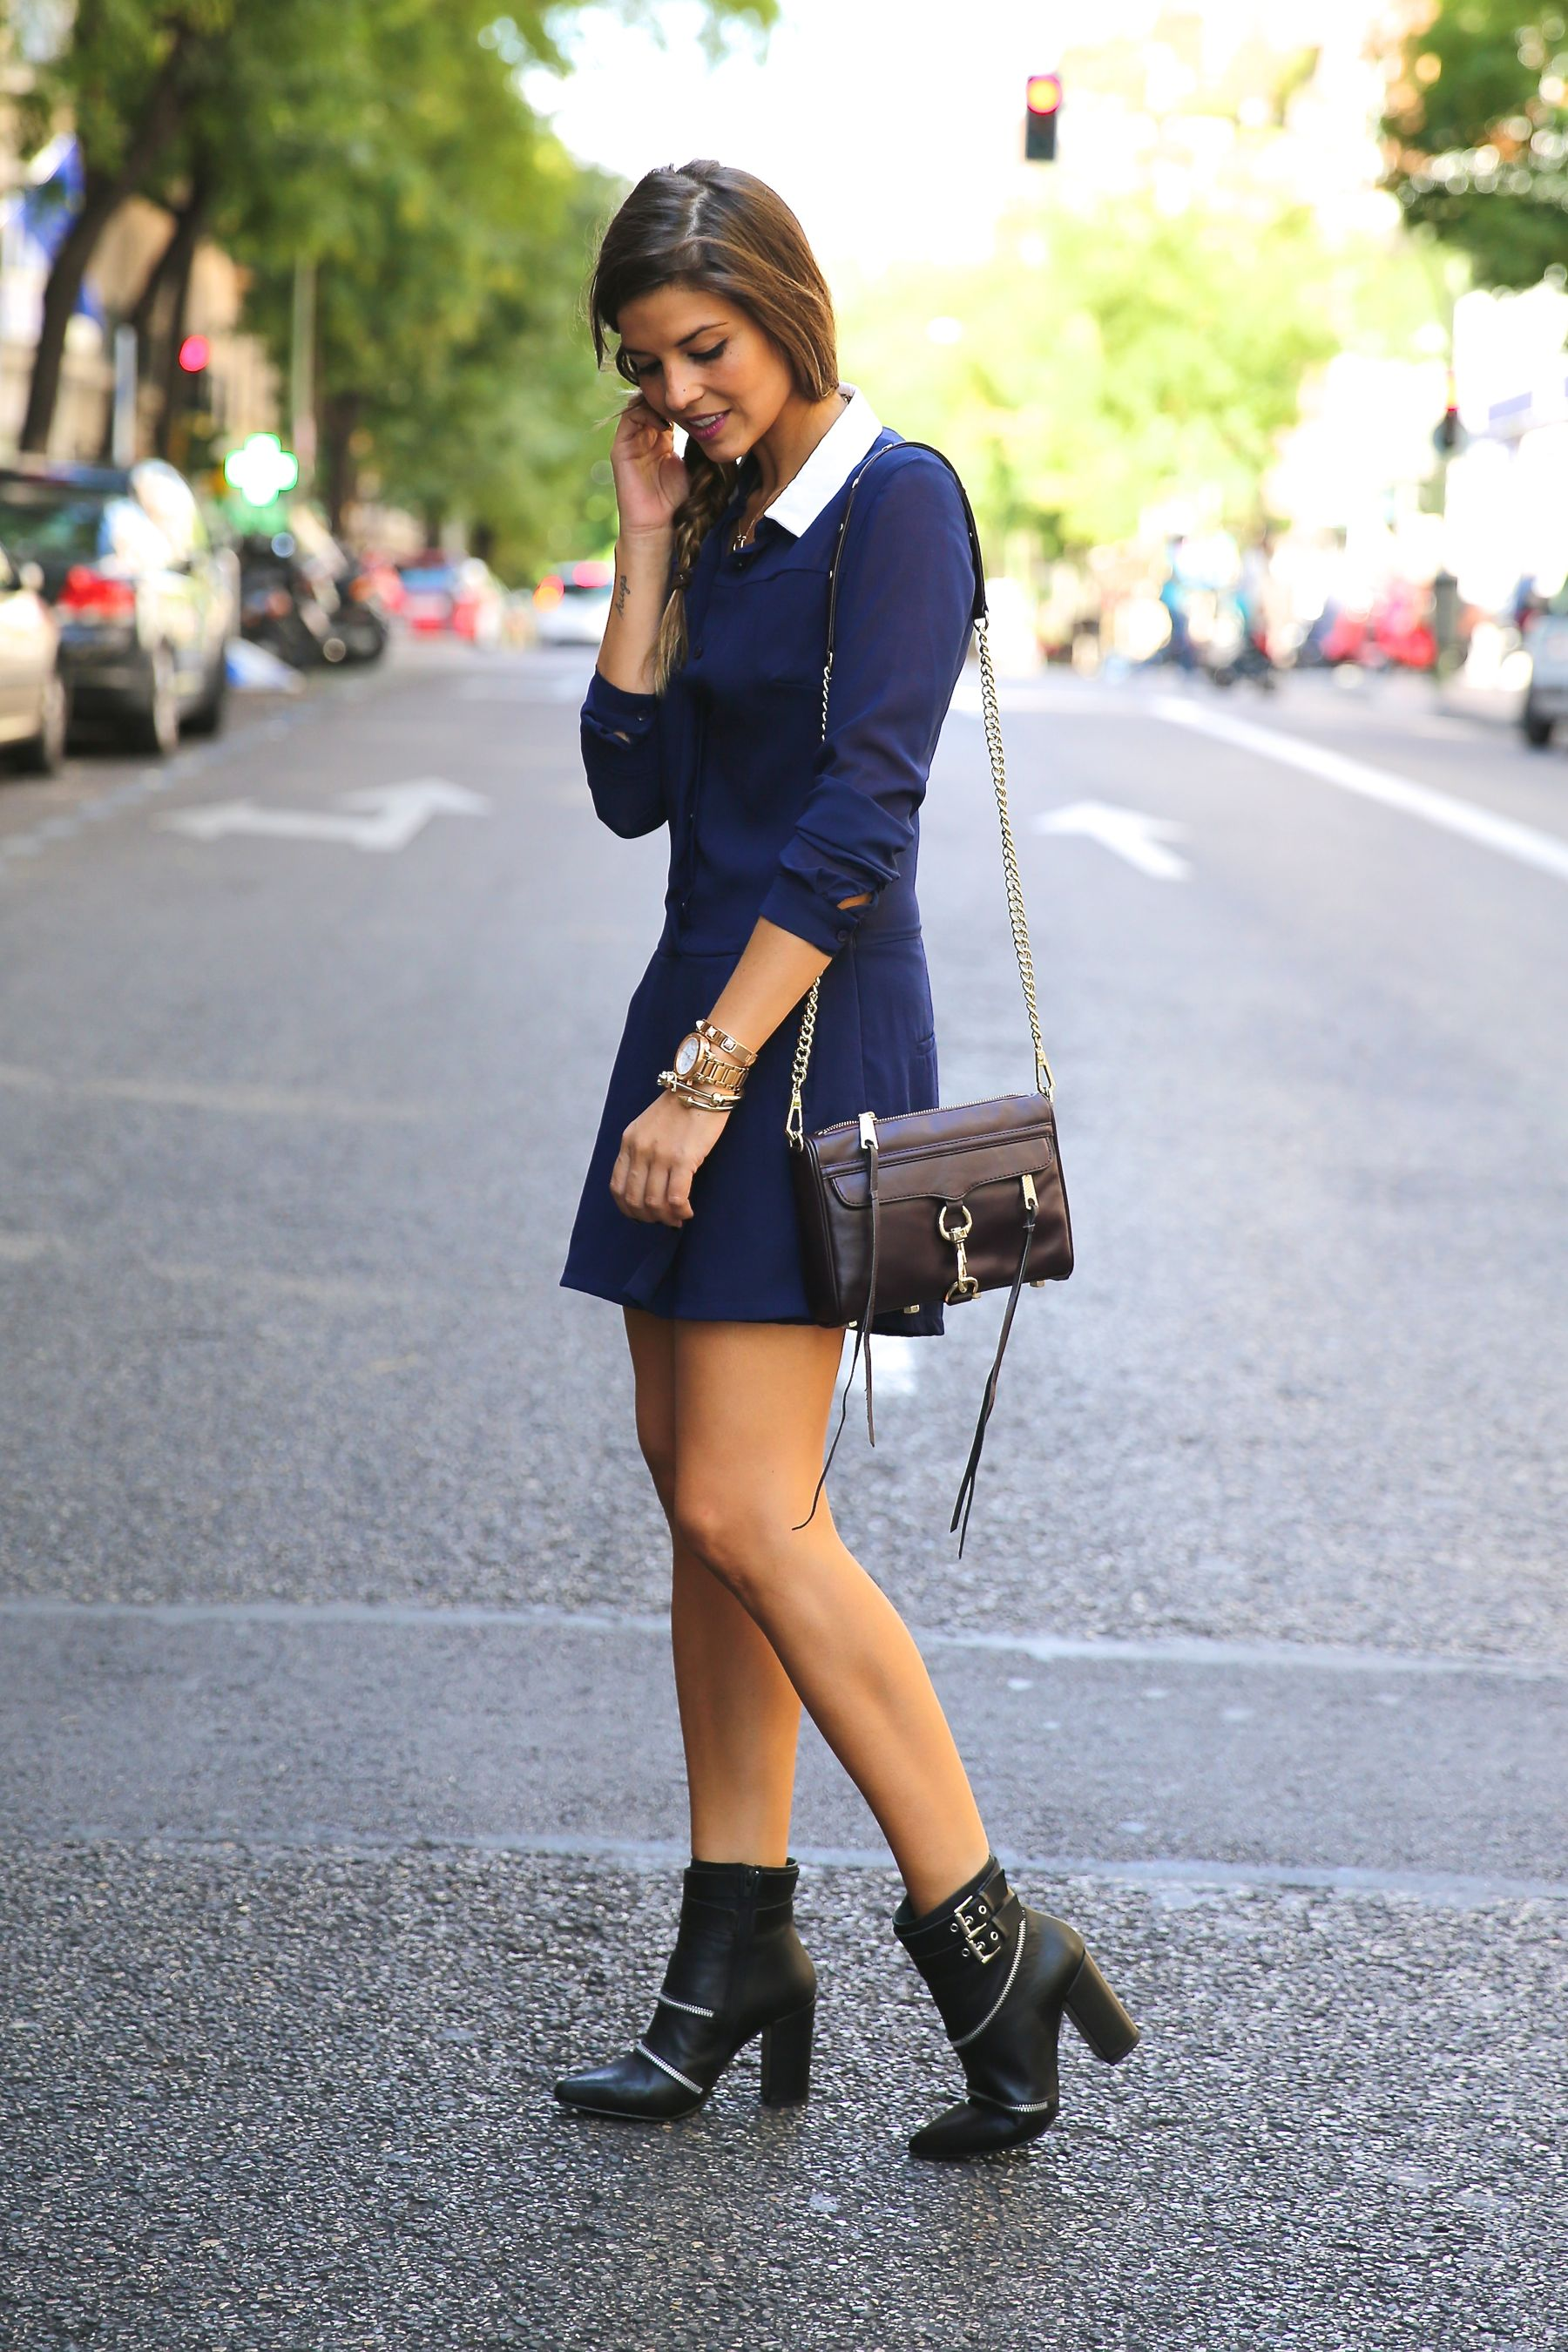 trendy_taste-look-outfit-street_style-ootd-blog-blogger-fashion_spain-moda_españa-fashion_pills-mono-overall-booties-botines-azul-blue-casual-12